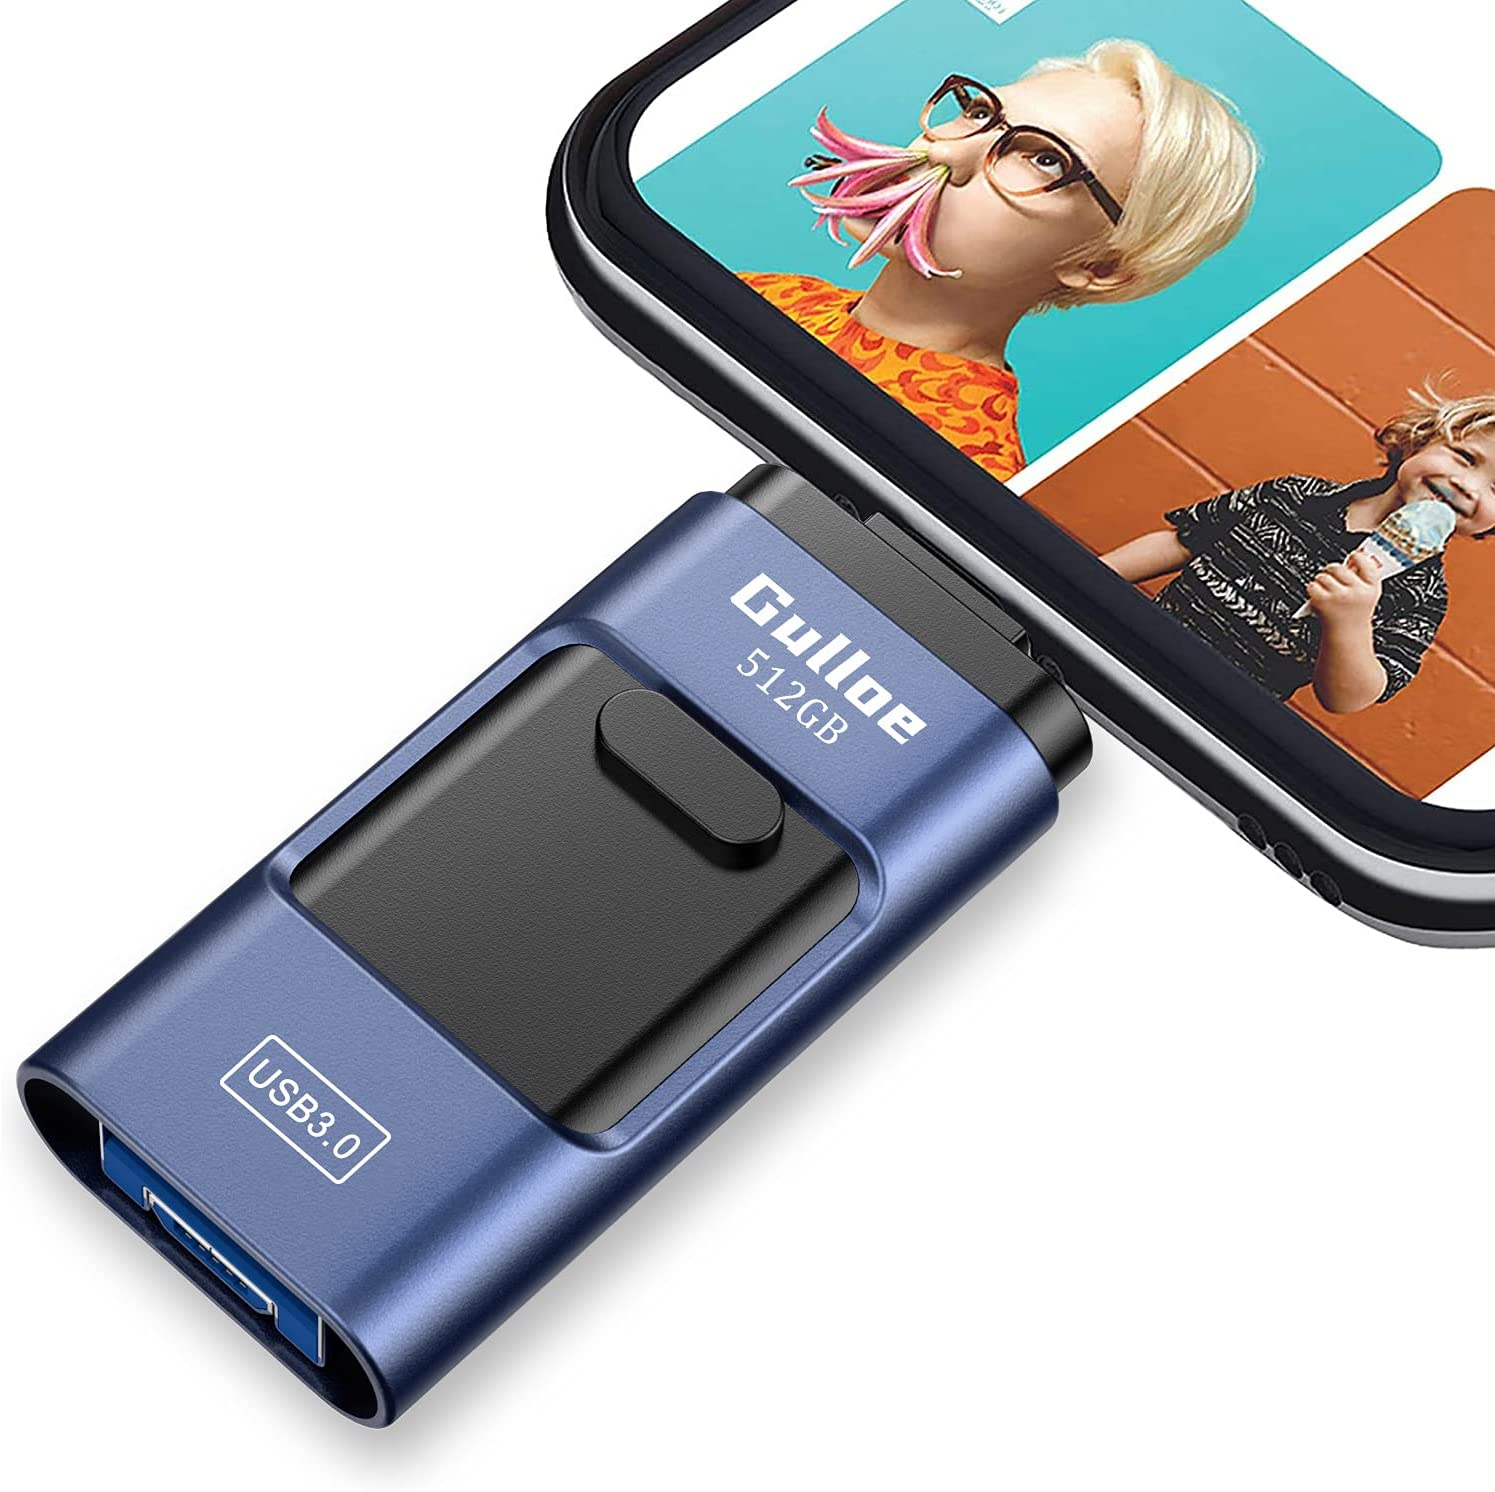 Gulloe USB3.0 Flash Drive 512GB, USB Memory Stick External Storage Thumb Drive Photo Stick Compatible with iPhone, Android, Computer and More Devices (Dark Blue)